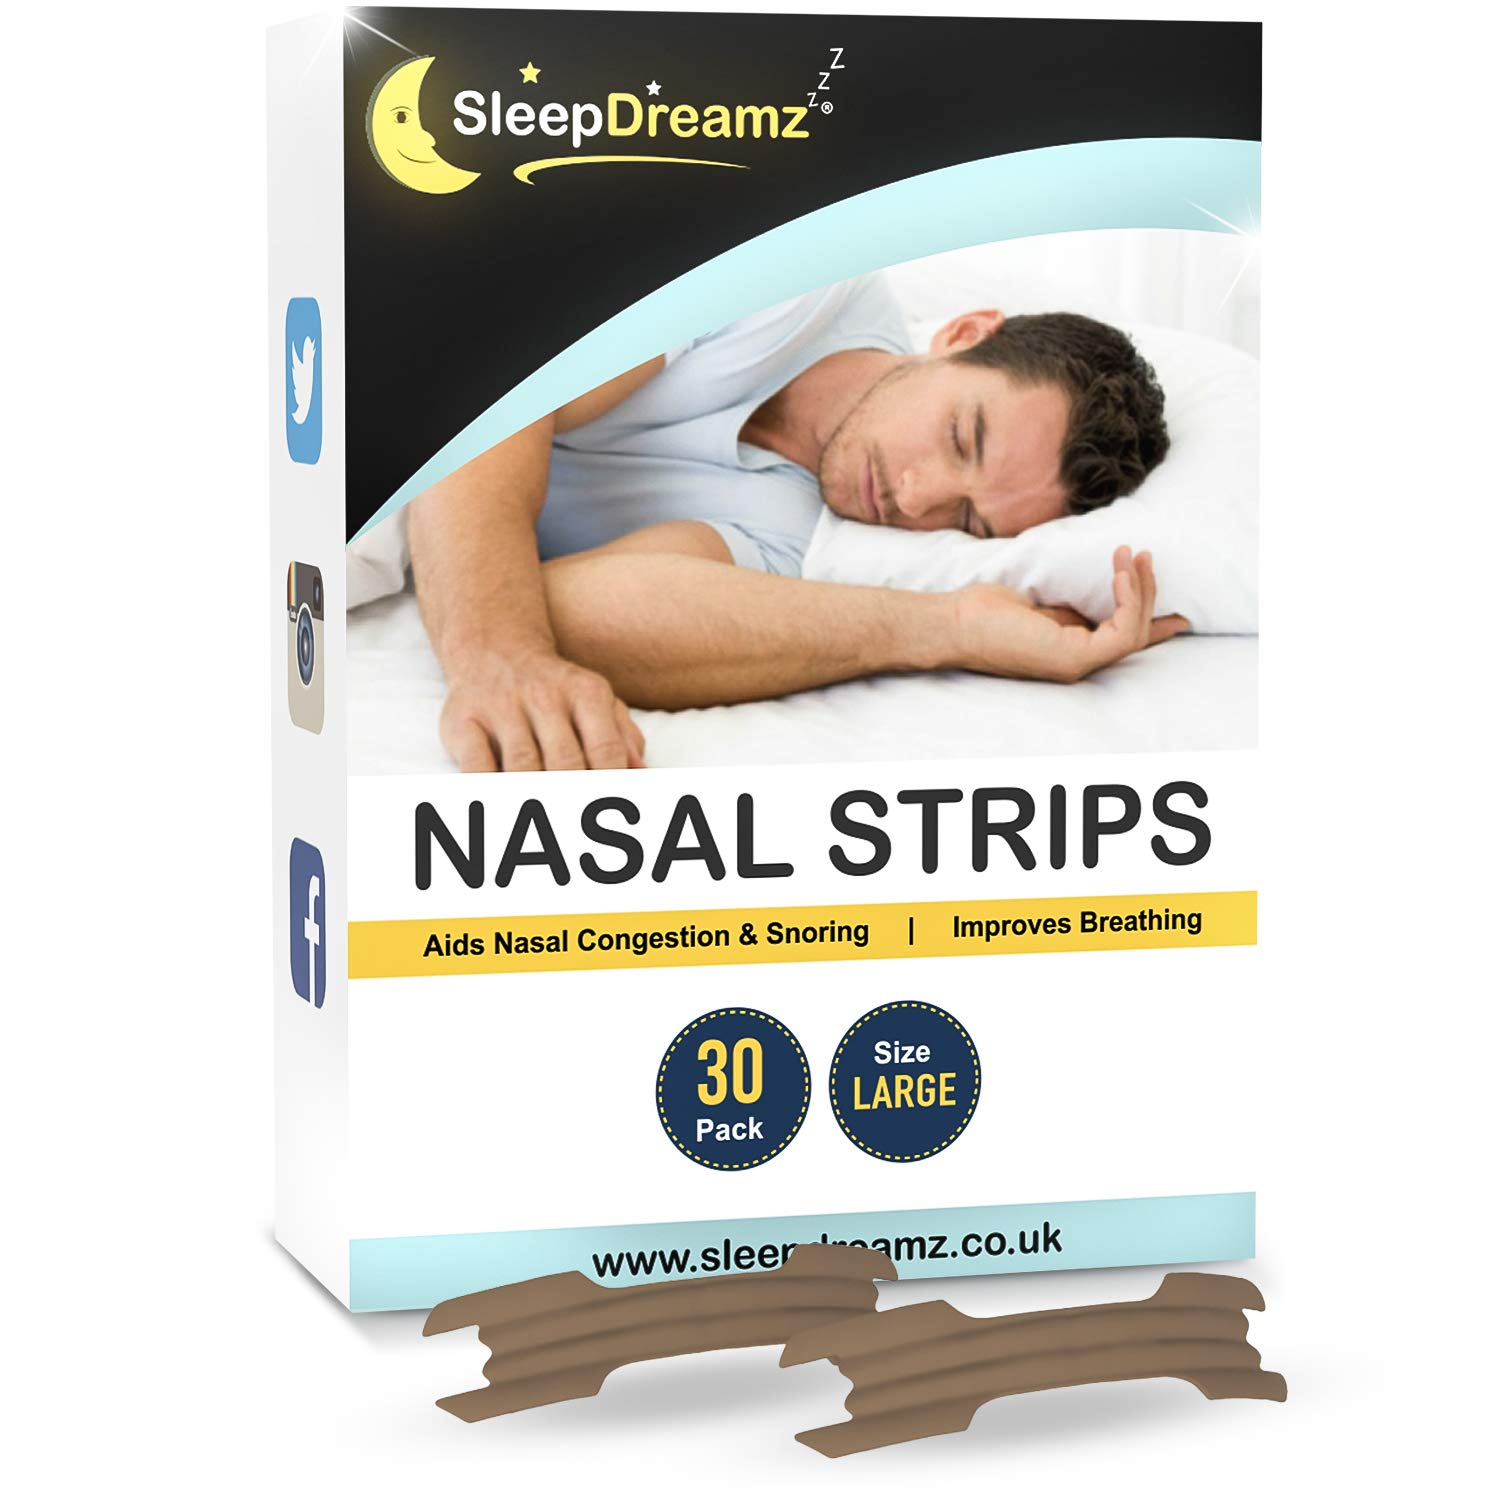 SleepDreamz Nasal Strips for Snoring Relief – Stop Snoring with Our Snore Stopper Nose Strips - Our Anti Snore Devices Relieve Nasal Congestion & Sleep Apnea – Snoring Strips (x30), 1 Month's Supply!